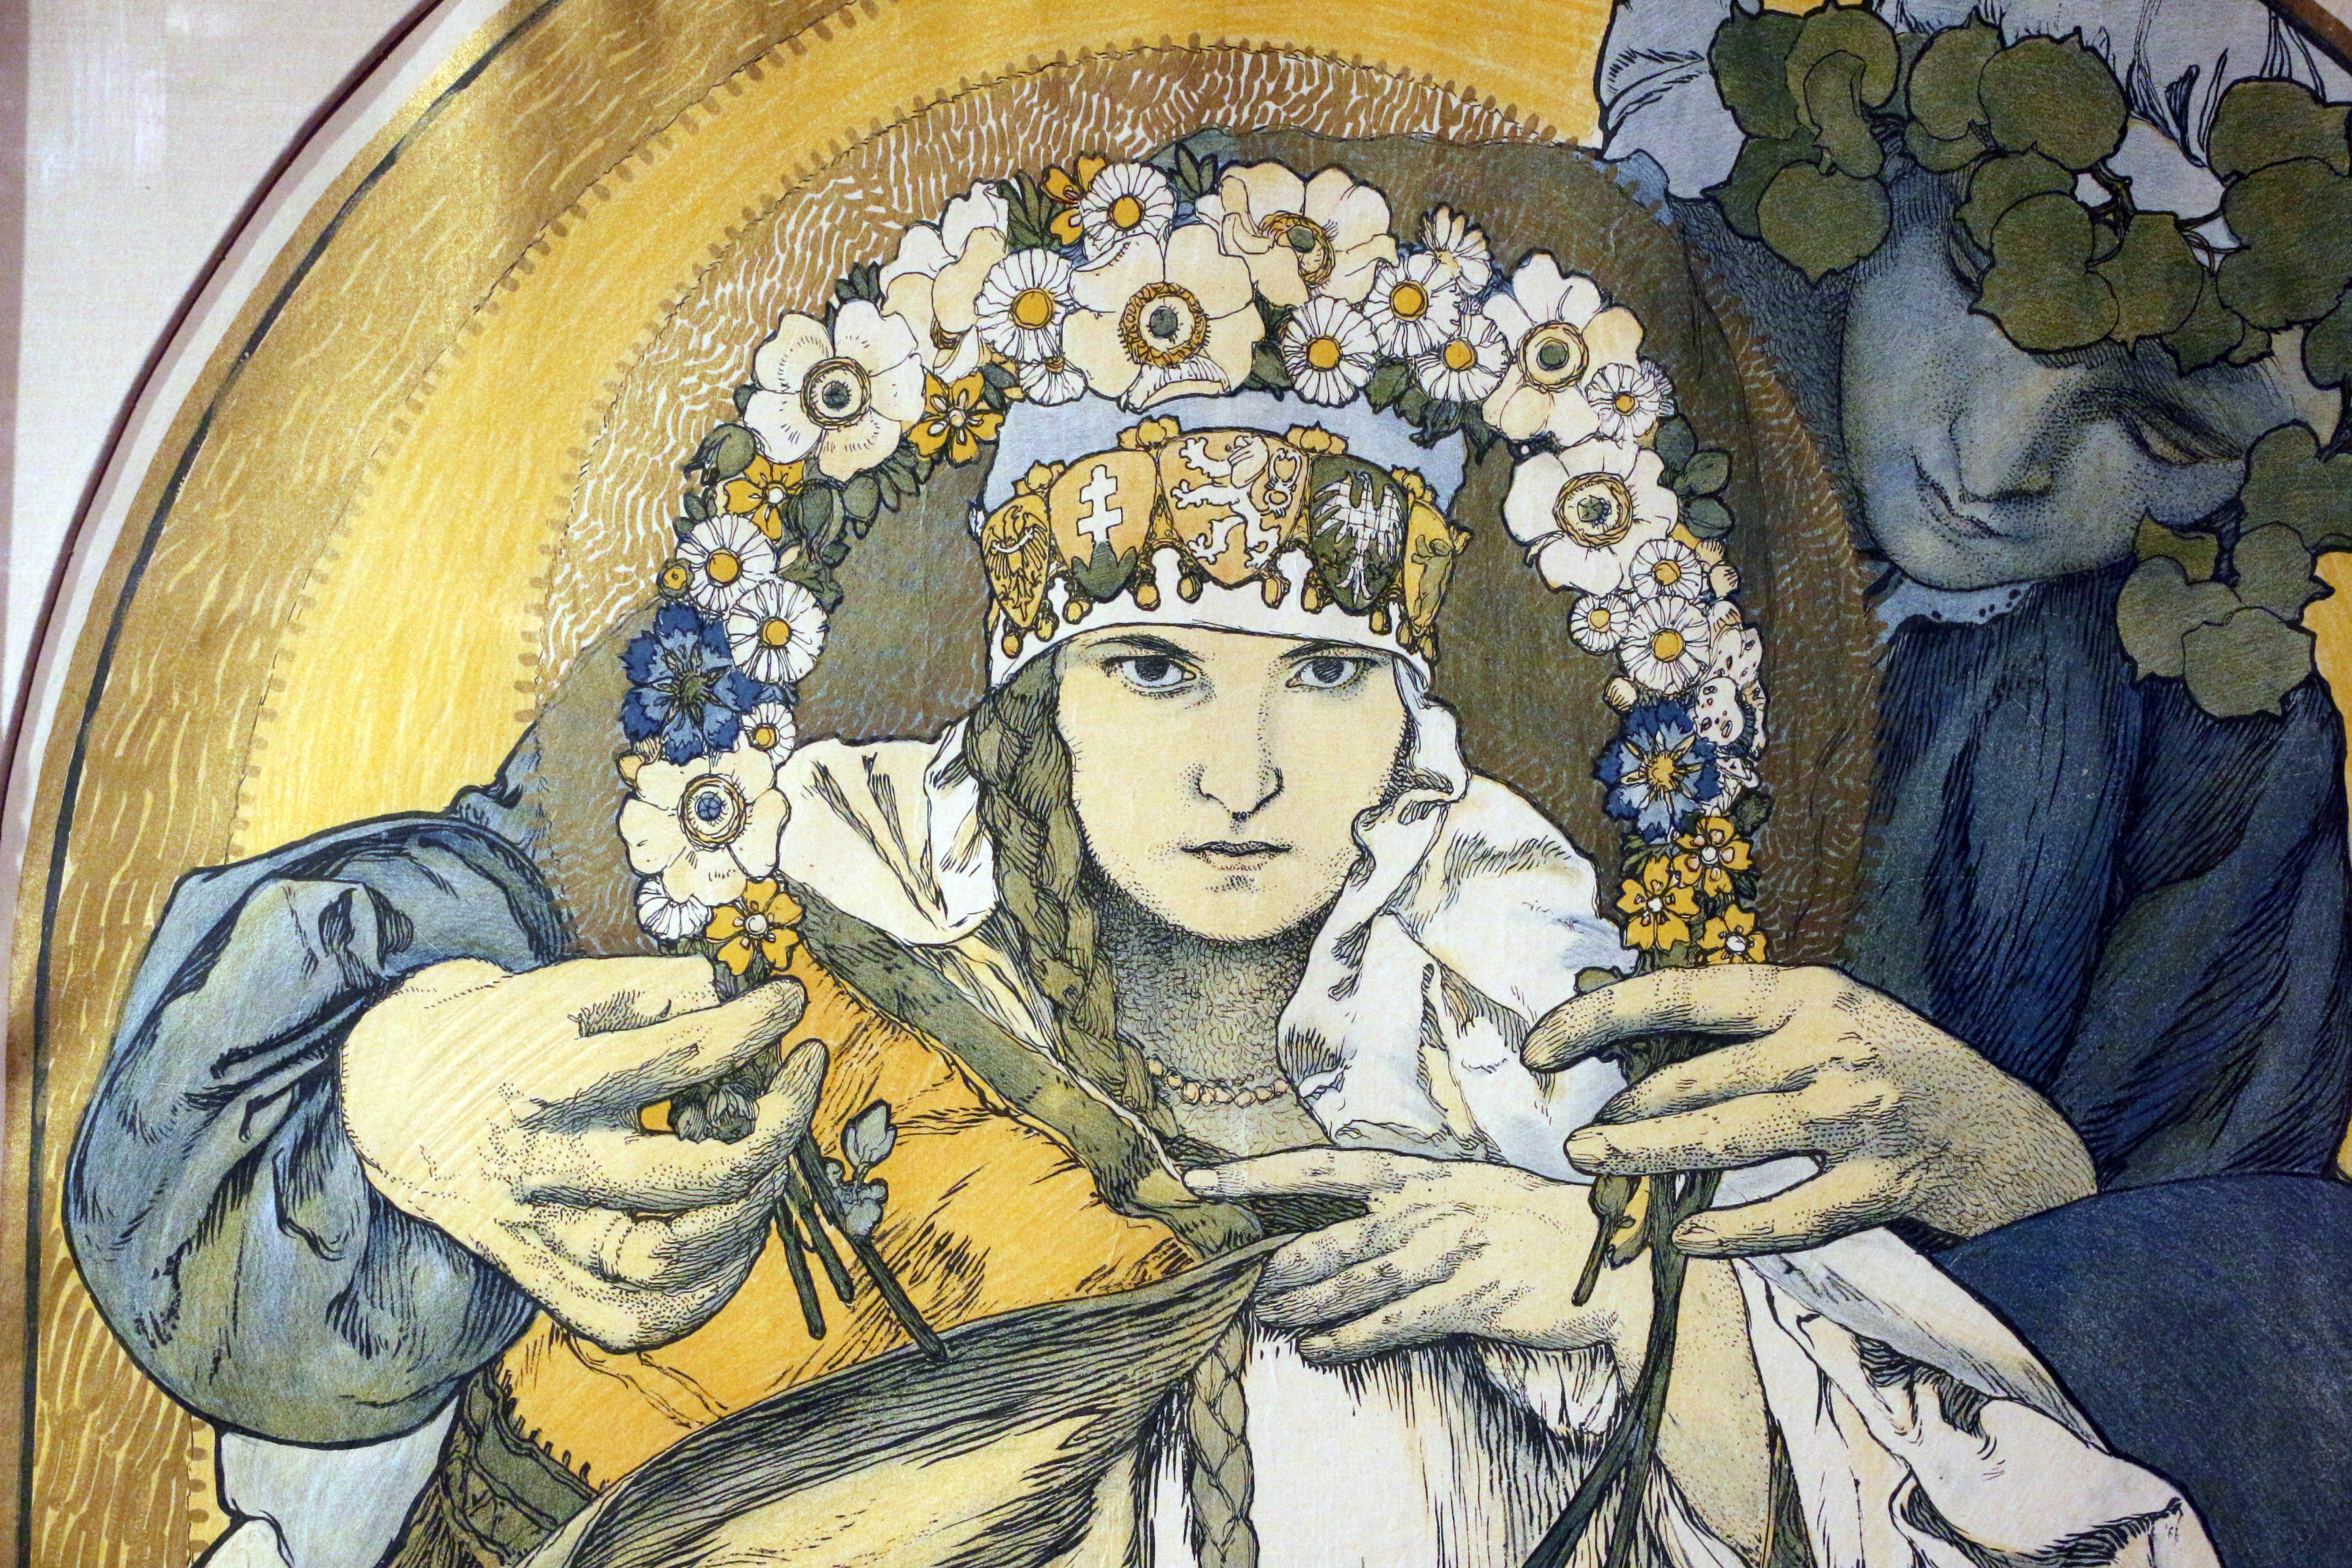 File:Alfons mucha, 1918-1928, 1928 (richard fuxa fundation